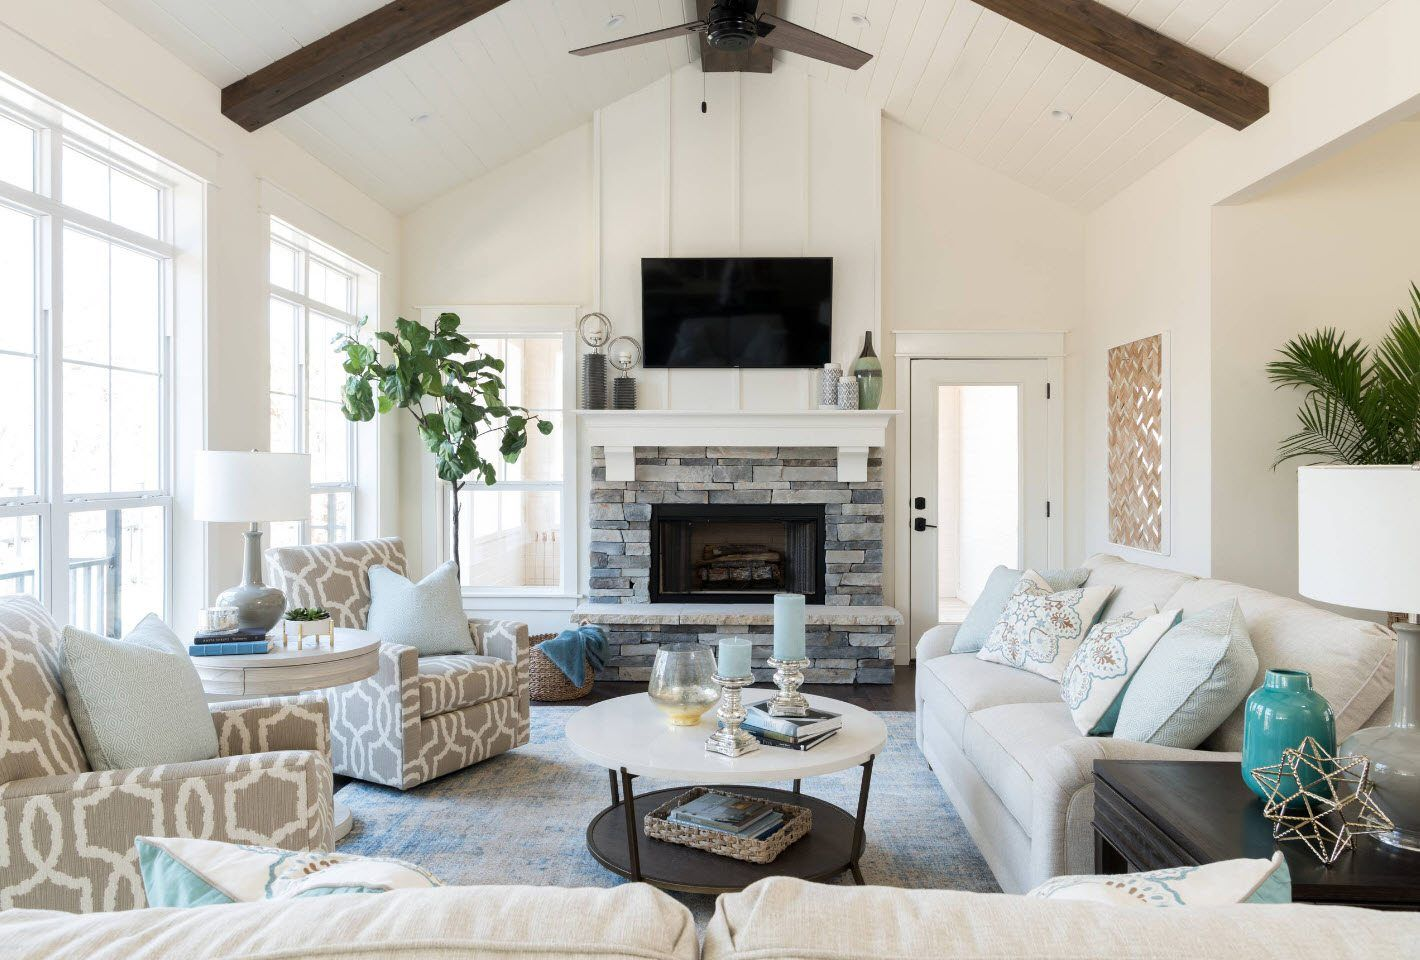 Large scale American styled open space living room